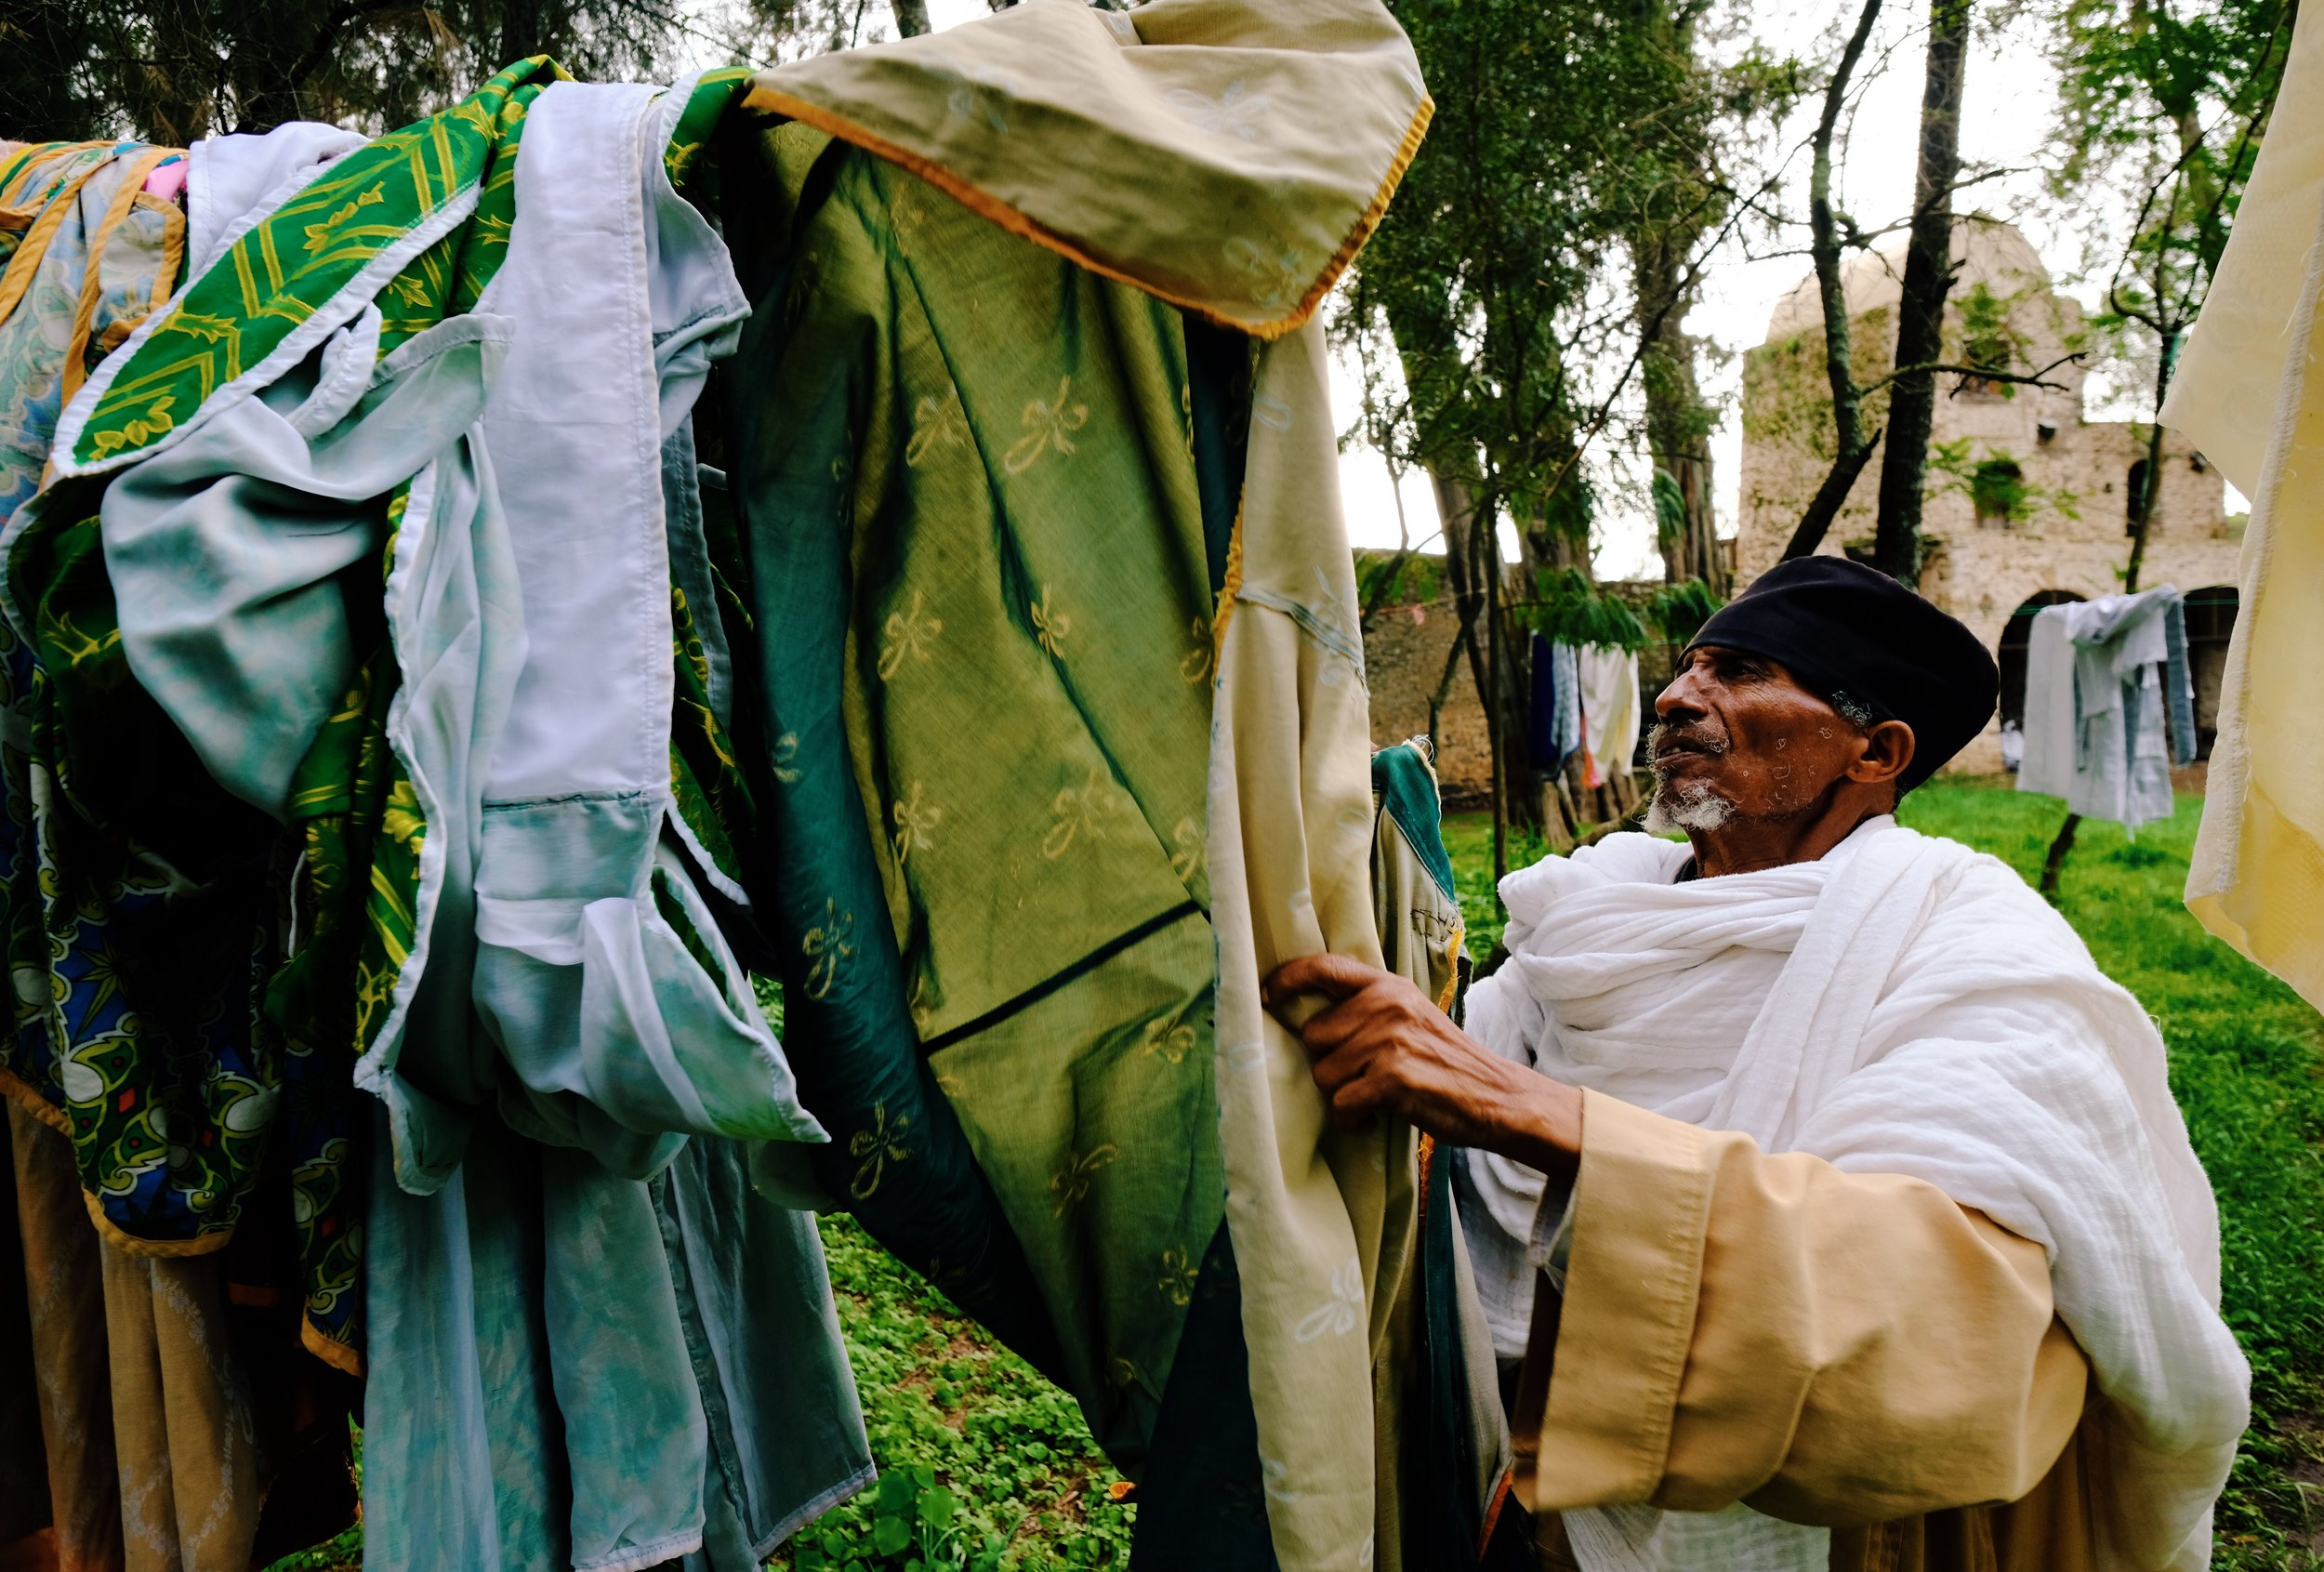 Monk+hanging+laundry+in+Gondar,+Ethiopia+by+Joost+Bastmeijer.jpeg